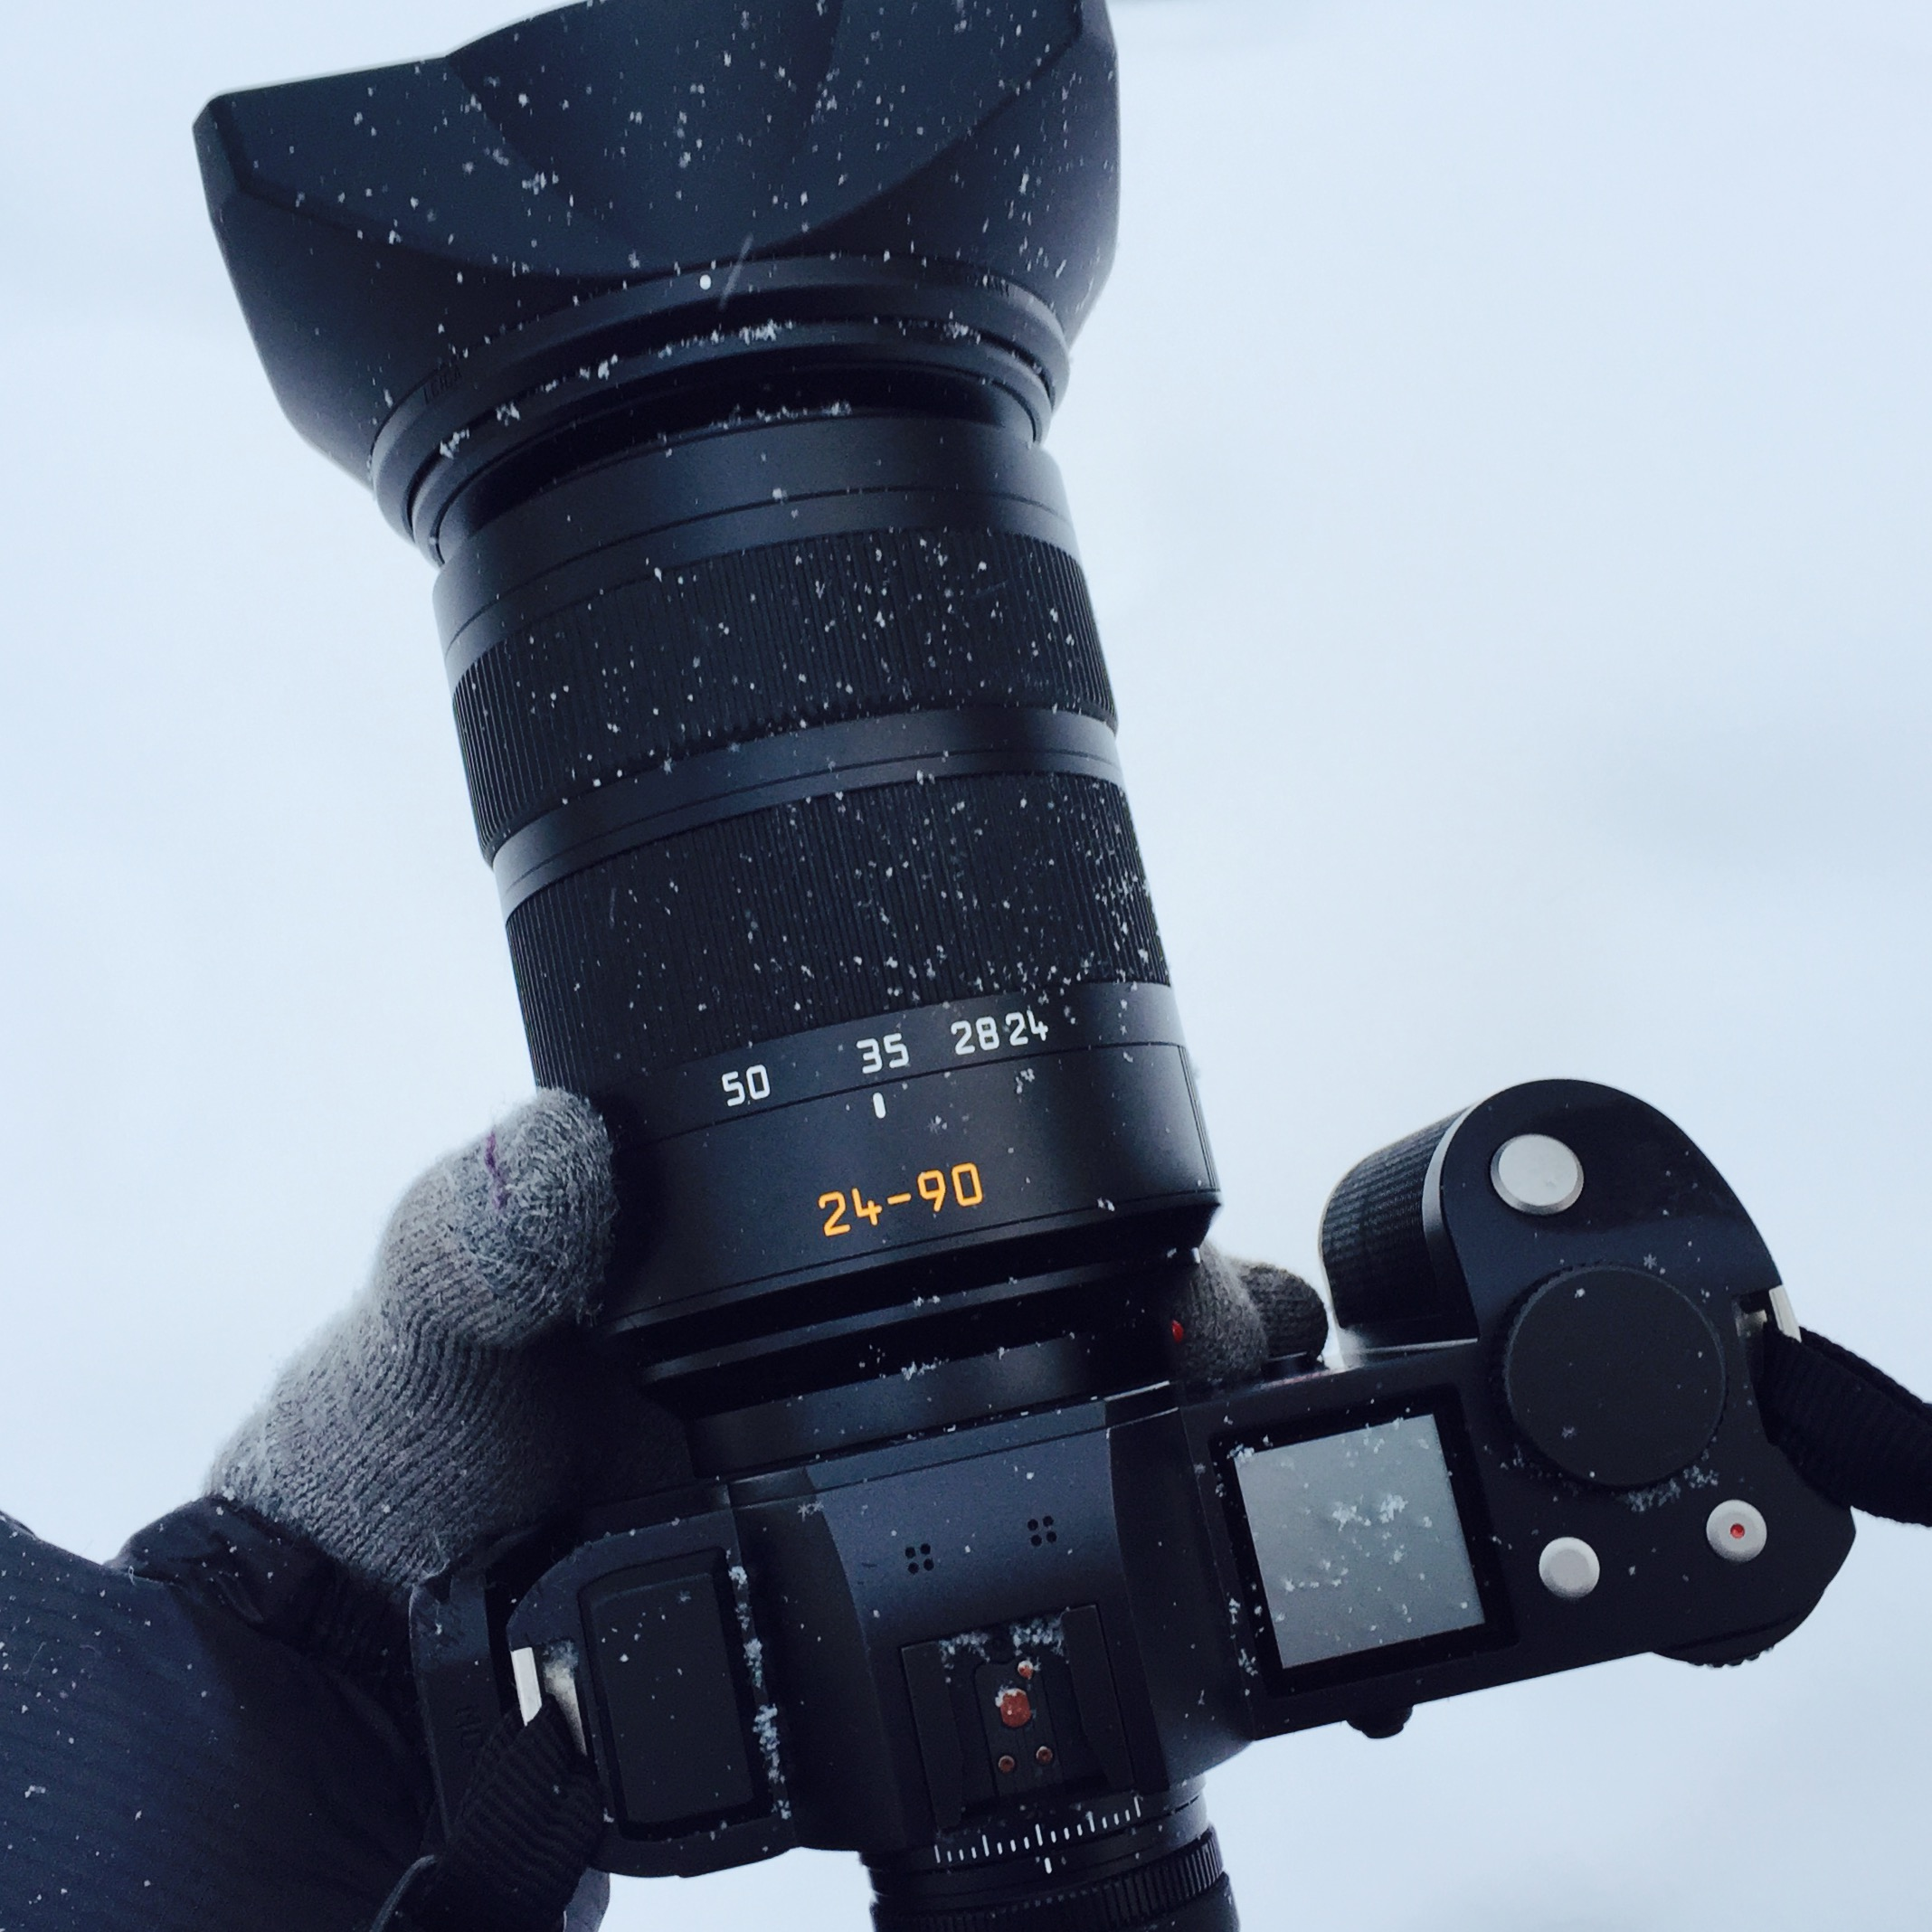 Weather sealing, one of the selling points of the Leica SL, was critical in this environment. I also was extra careful to turn off the camera during long periods between shots to preserve precious battery life. PS - that's the Really Right Stuff L-plate on the camera.